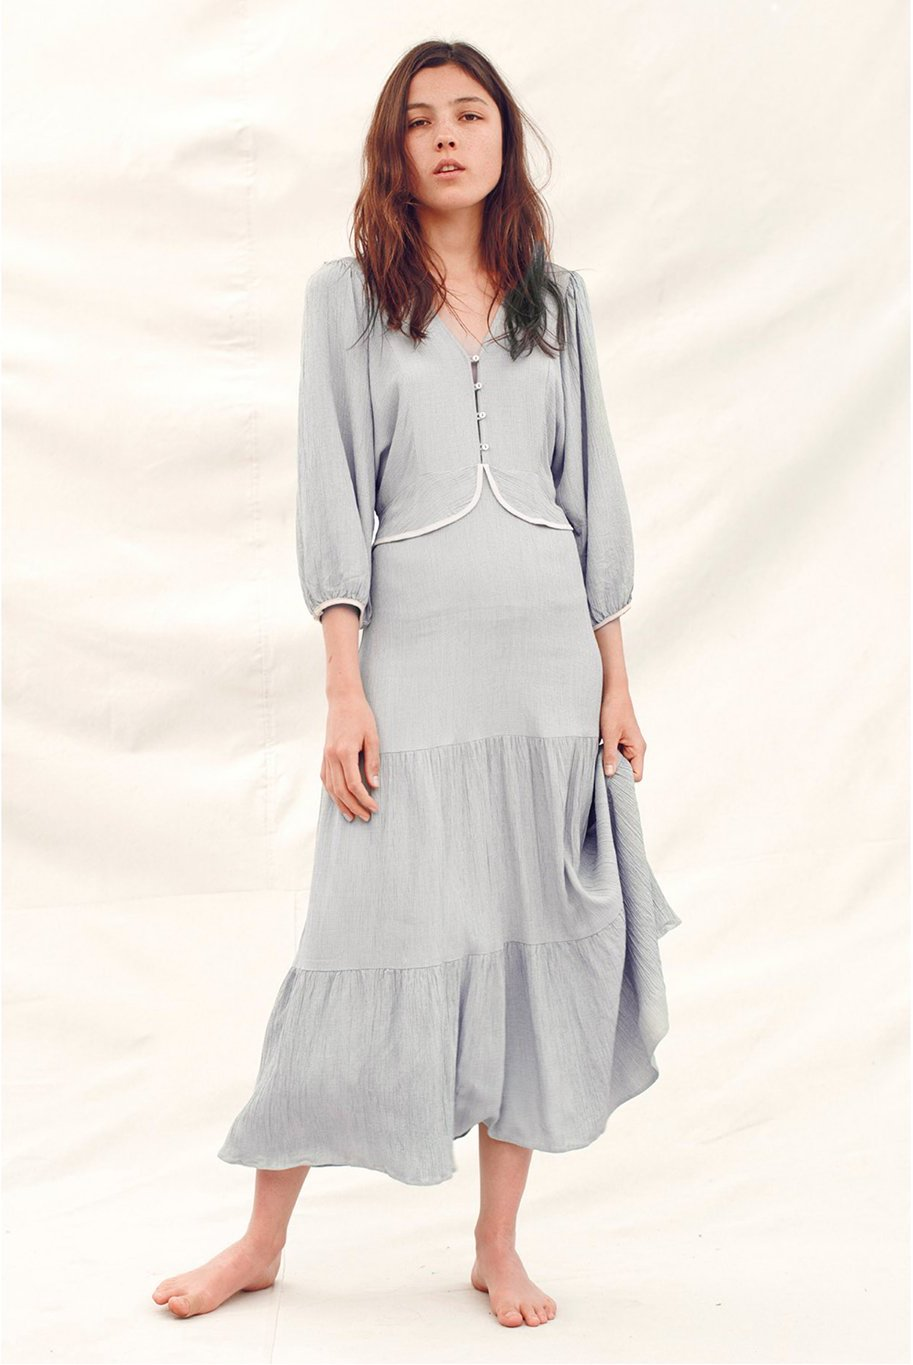 Victorian-Inspired Ethical Fashion | The Cicely Dress - Christy Dawn